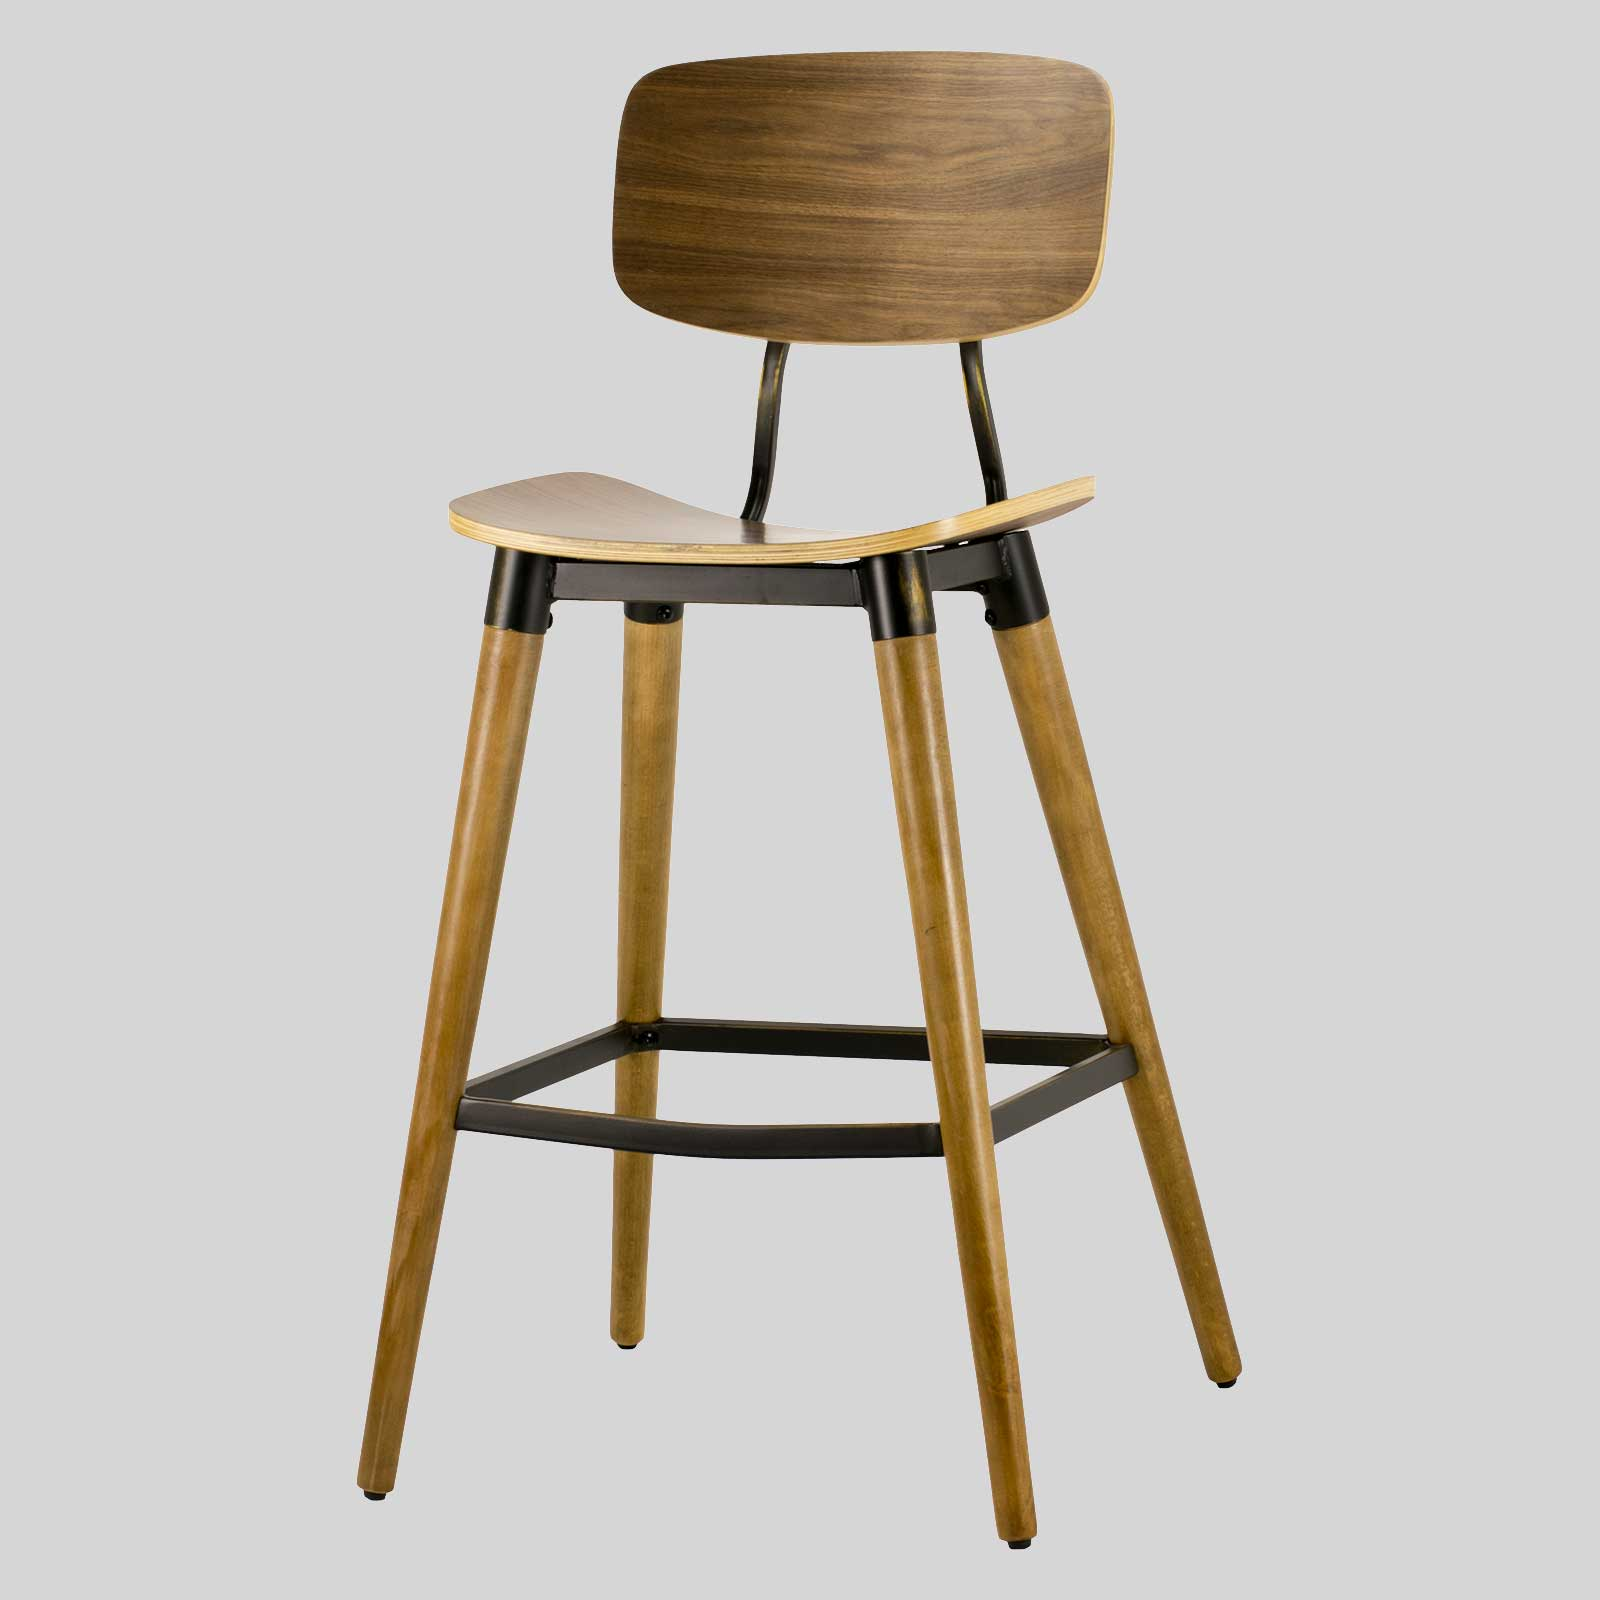 Retro X Barstools For Hotels Pubs Adelaide Melbourne